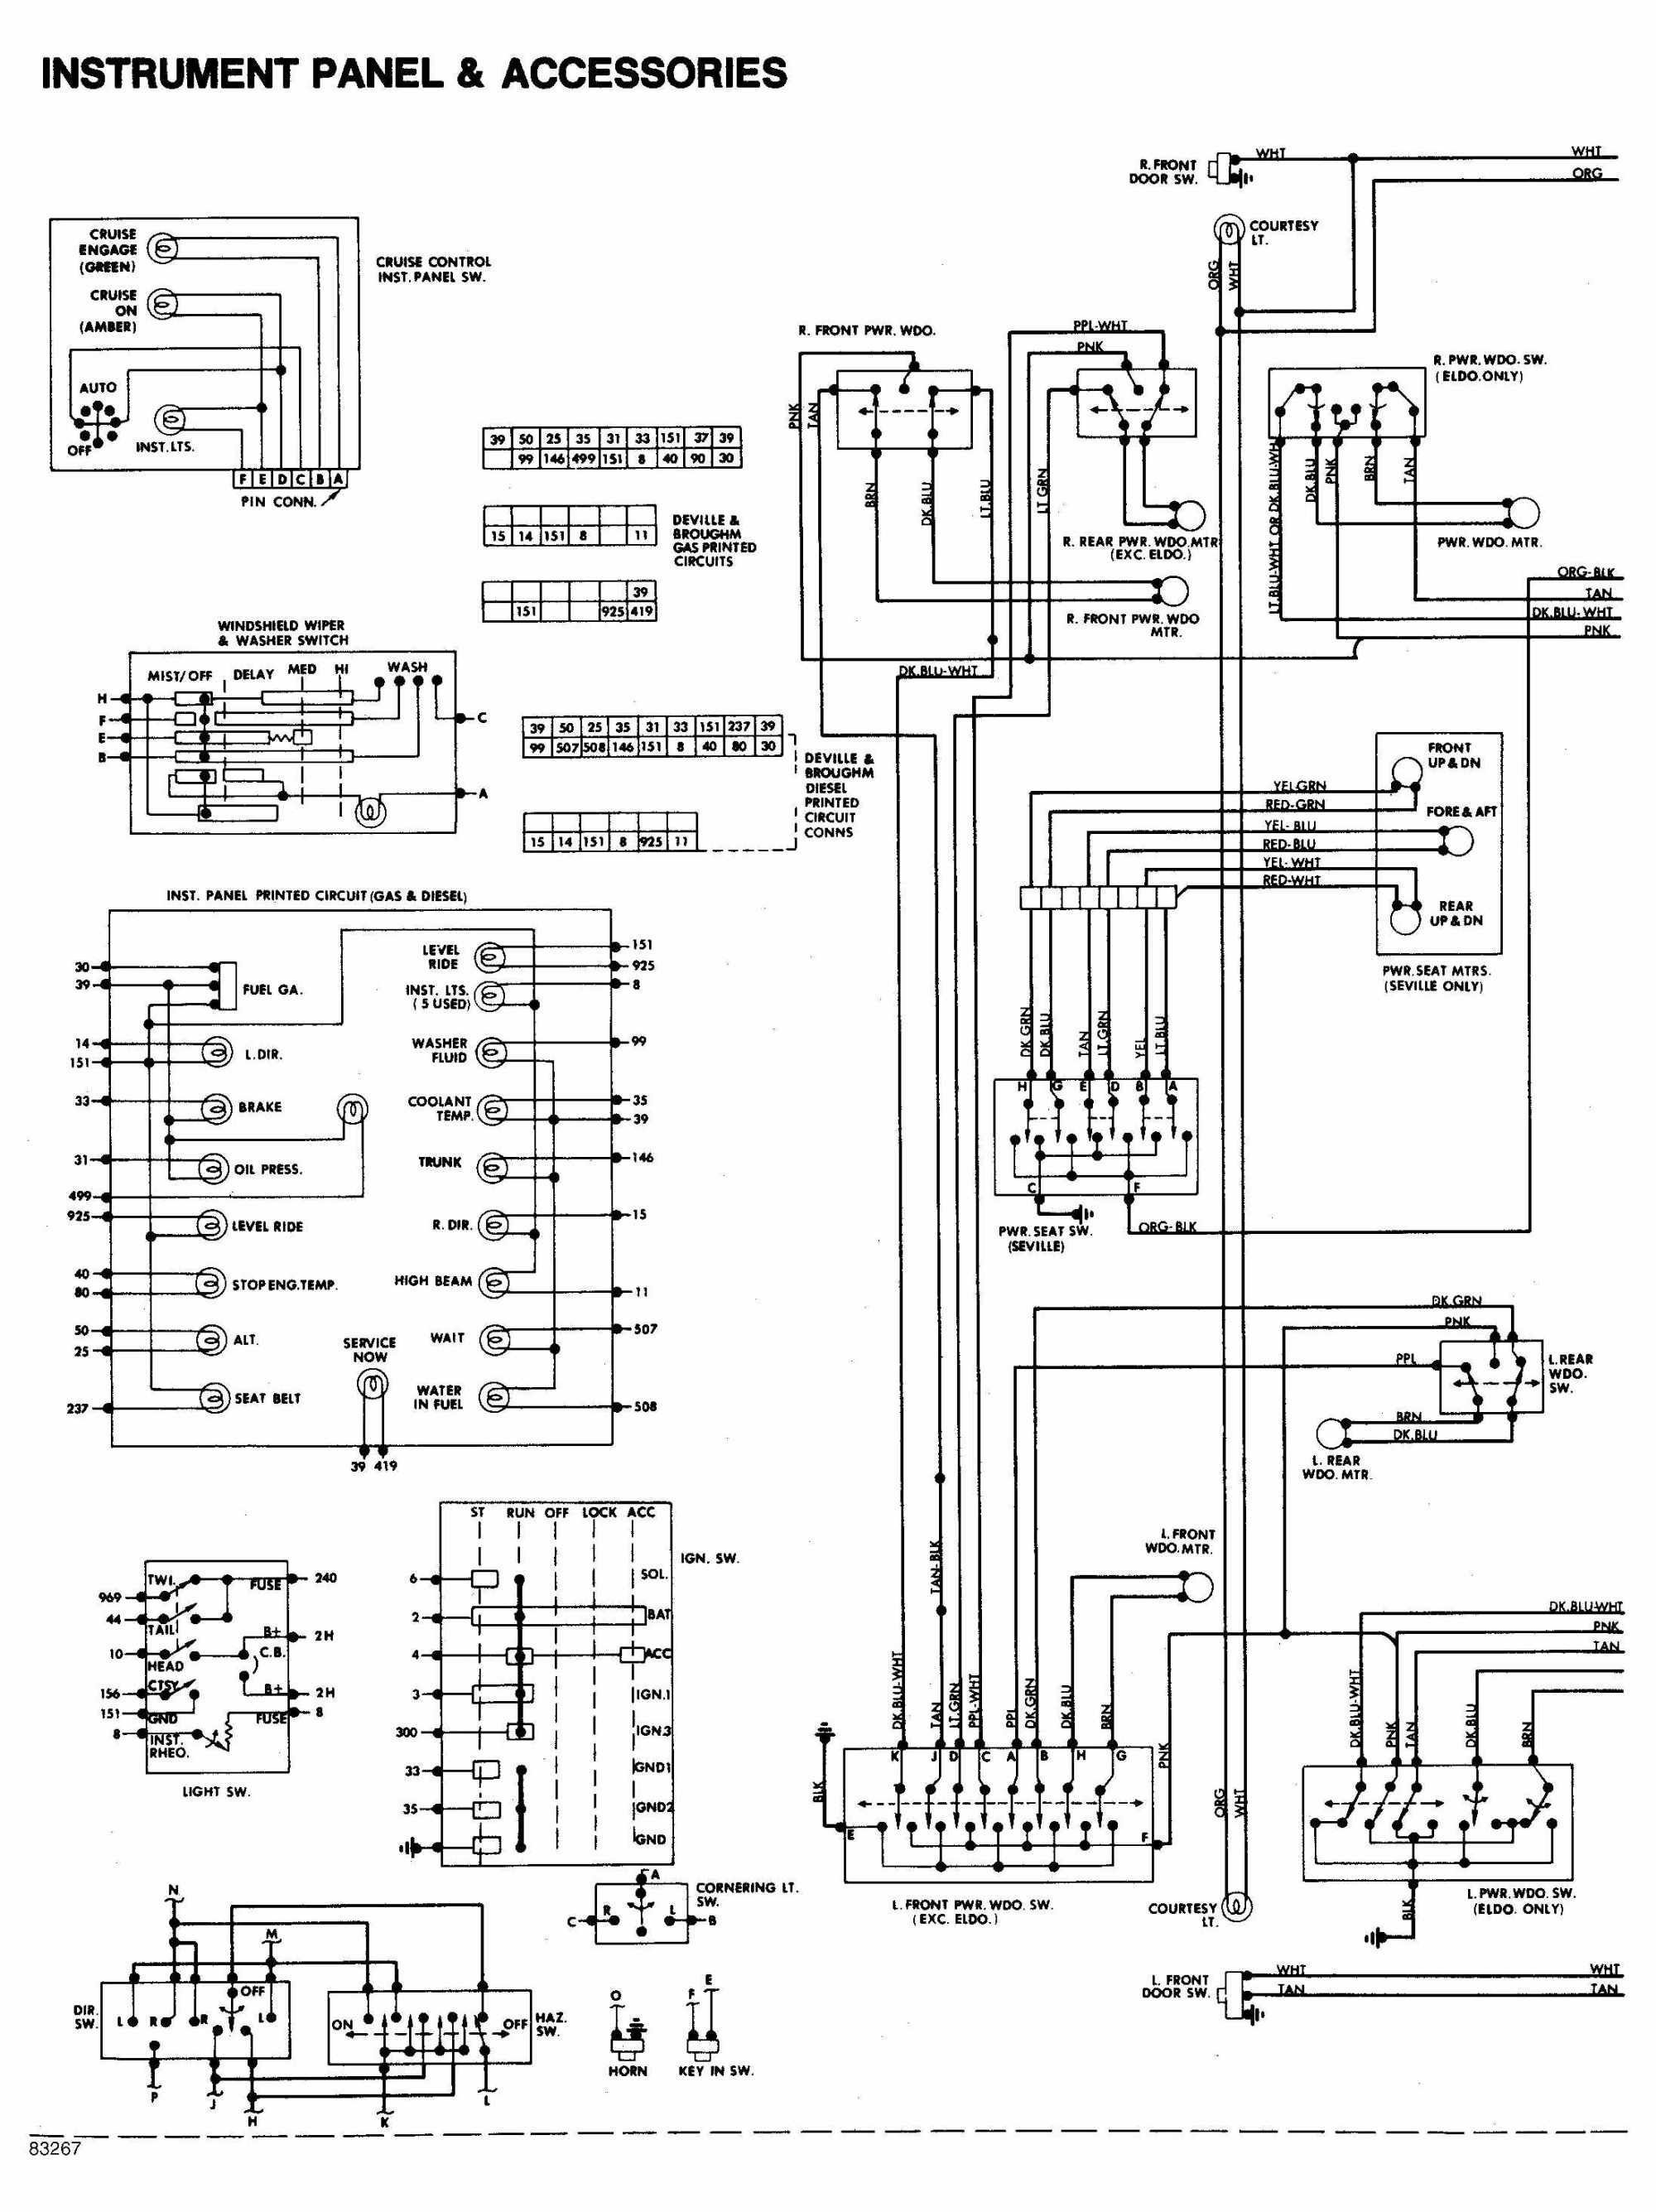 hight resolution of 1971 gmc wiring harness wiring diagram 1971 gmc wiring harness